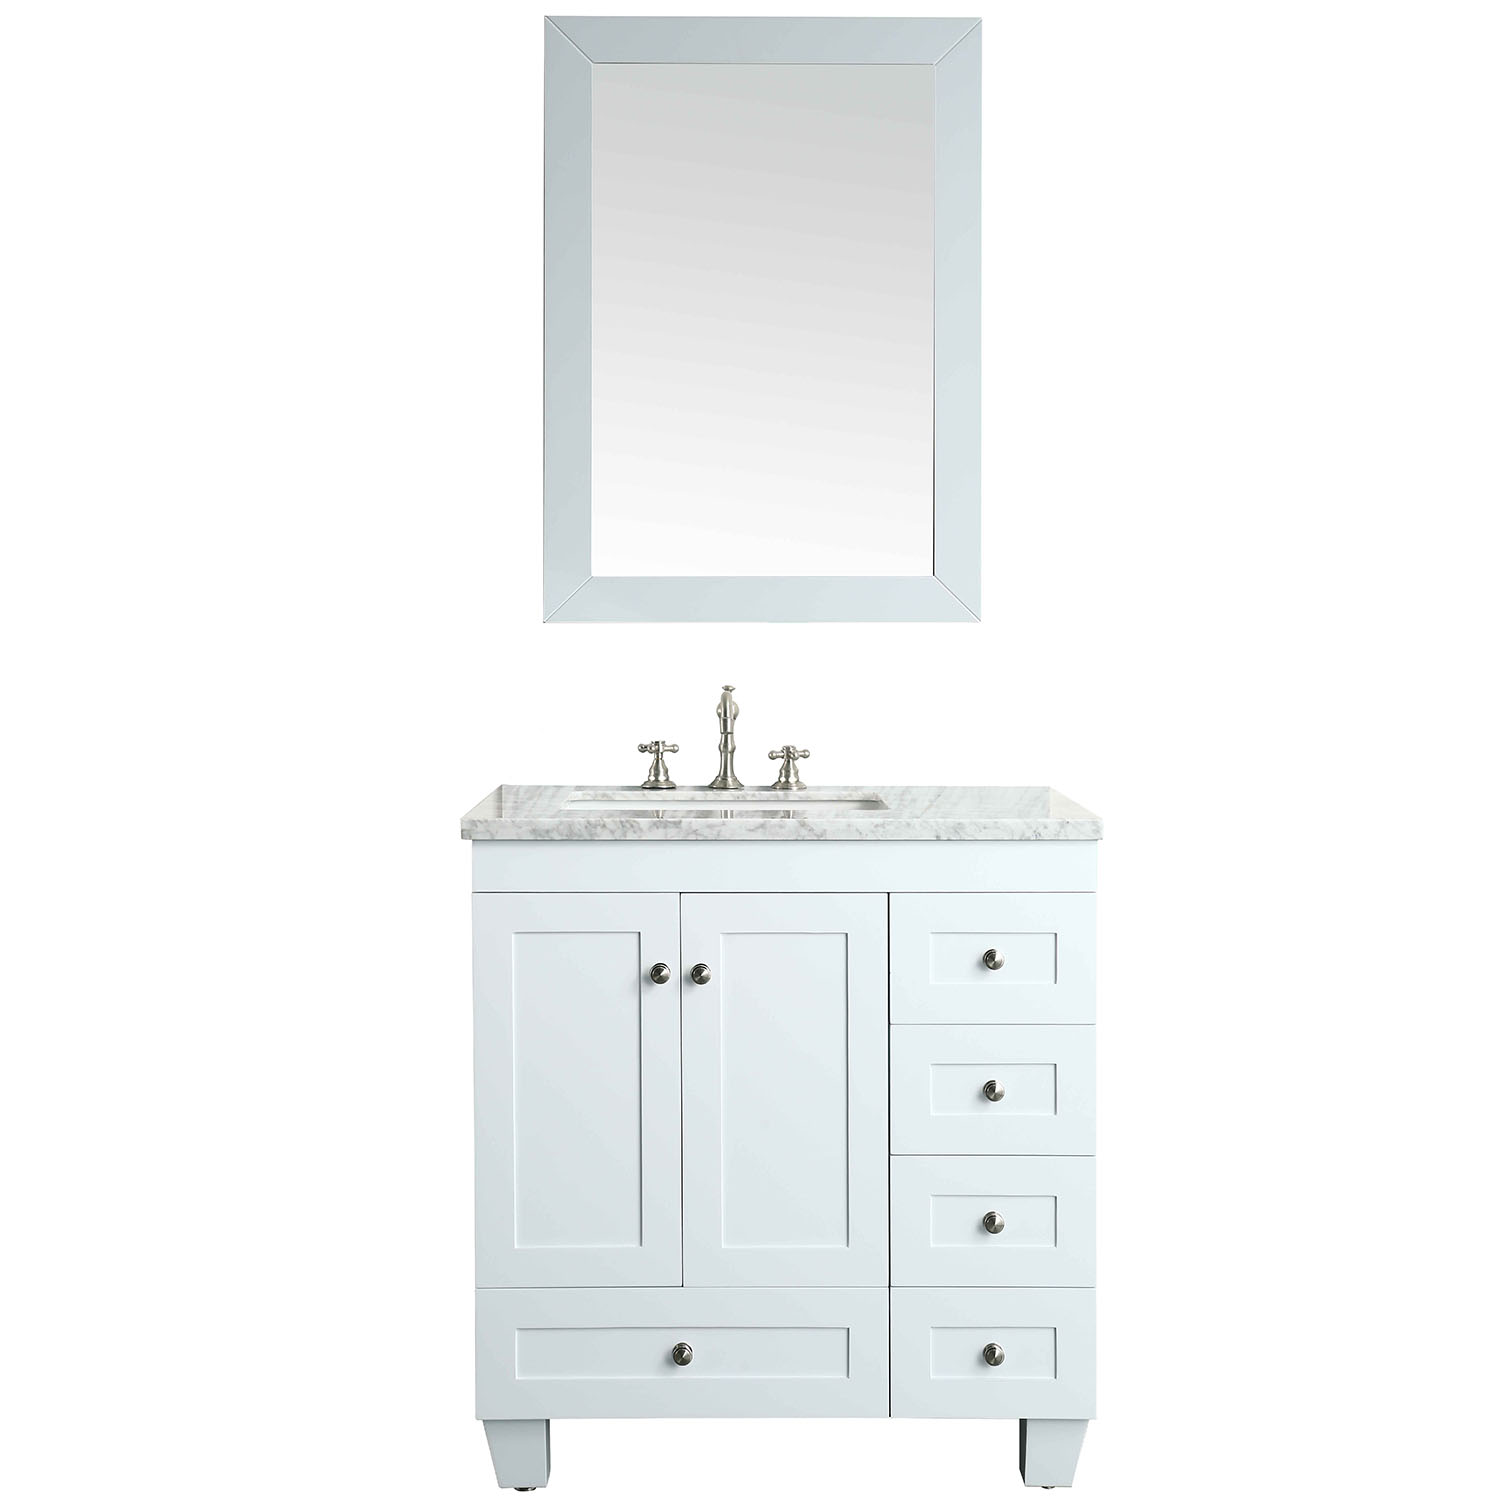 "EVVN69 30WH A Main - Eviva Acclaim C. 30"" Transitional White Bathroom Vanity with white carrera marble counter-top"